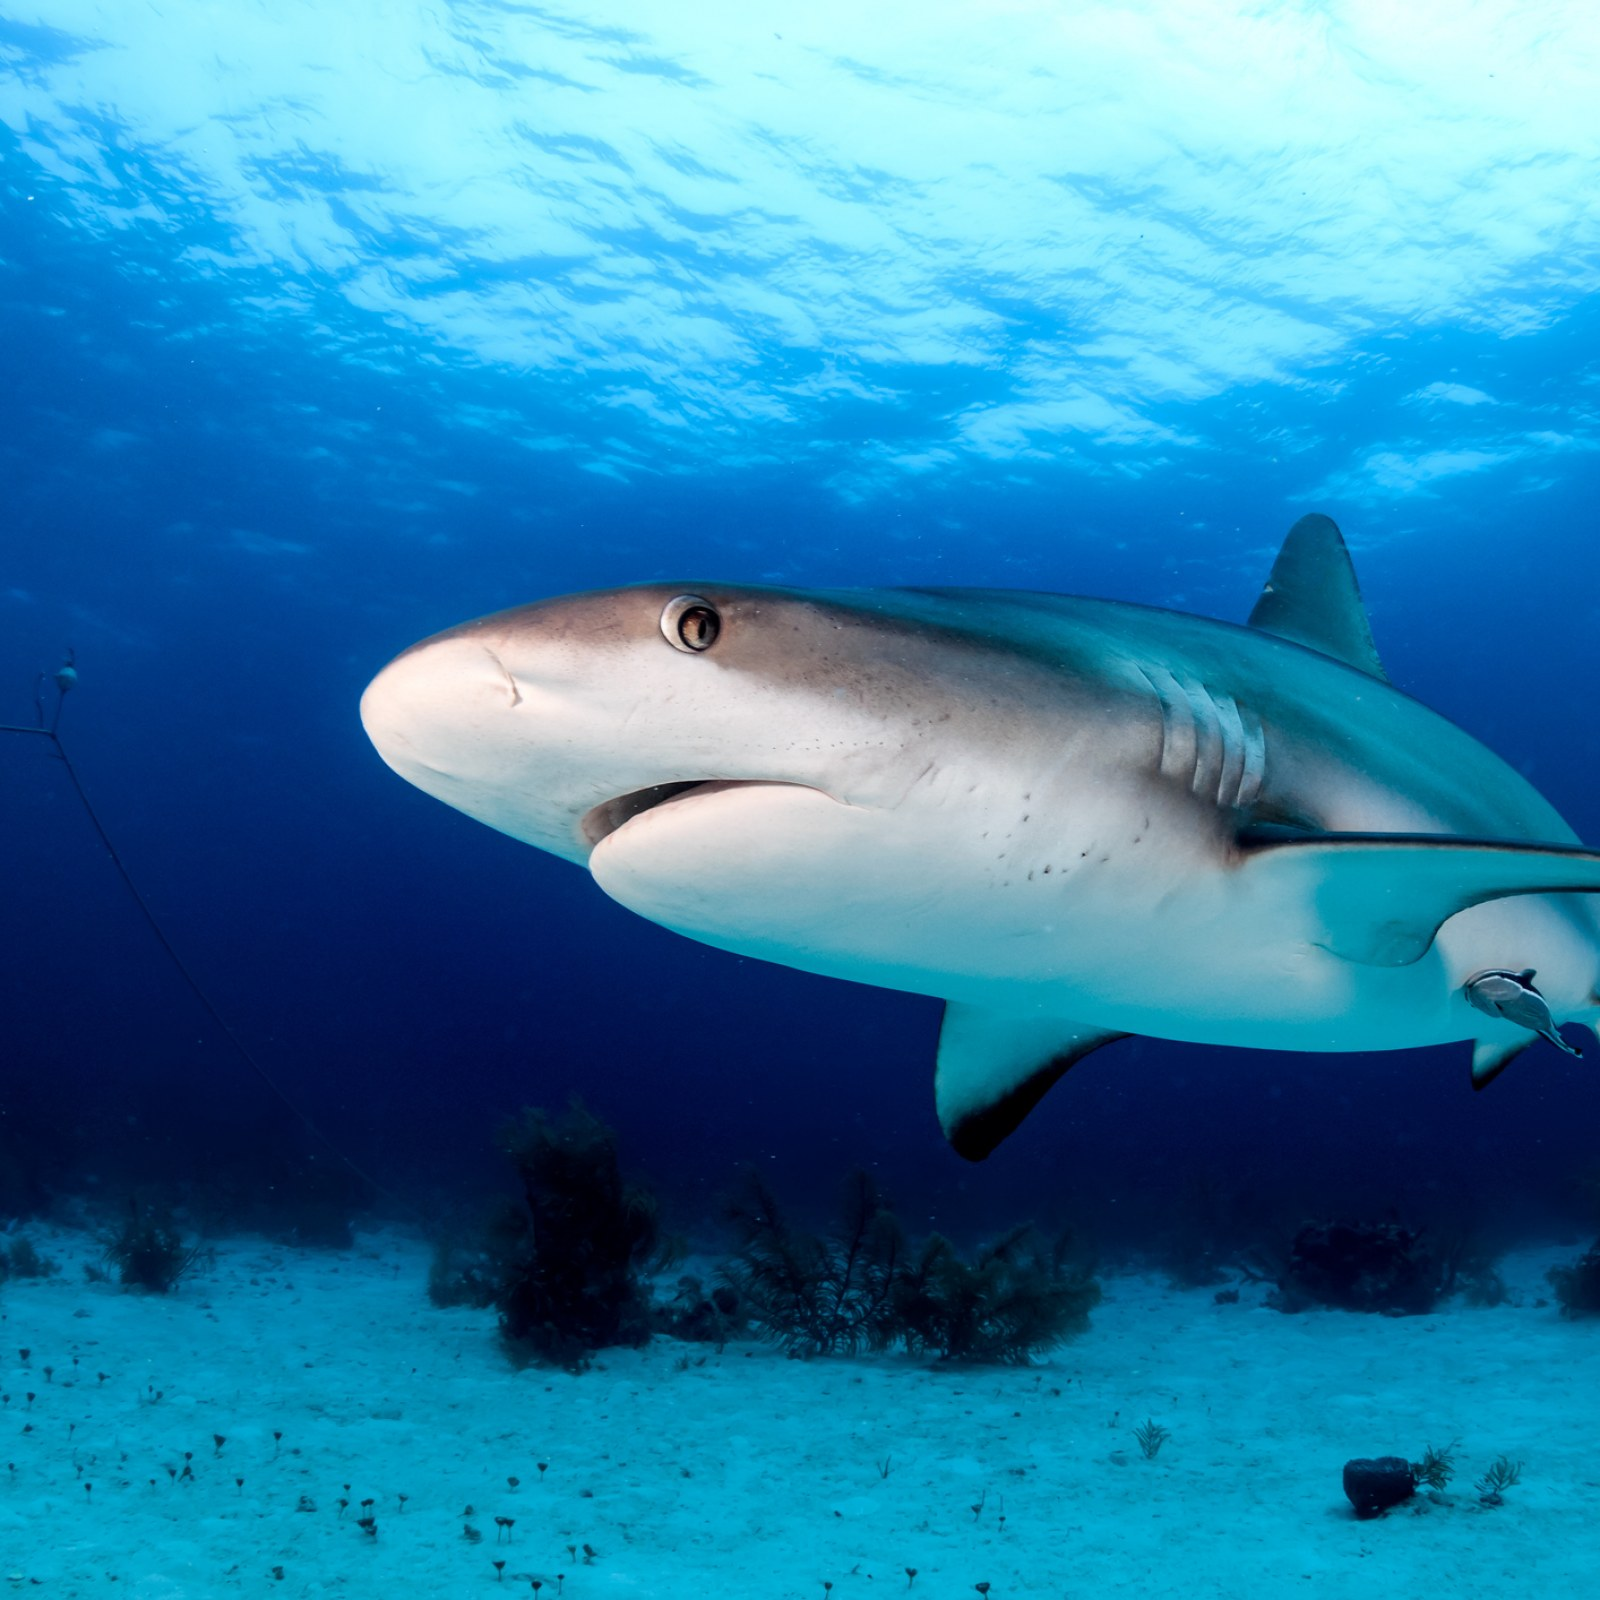 Gruesome Shark Feeding Video Suggests They Prefer Fish to Human Blood